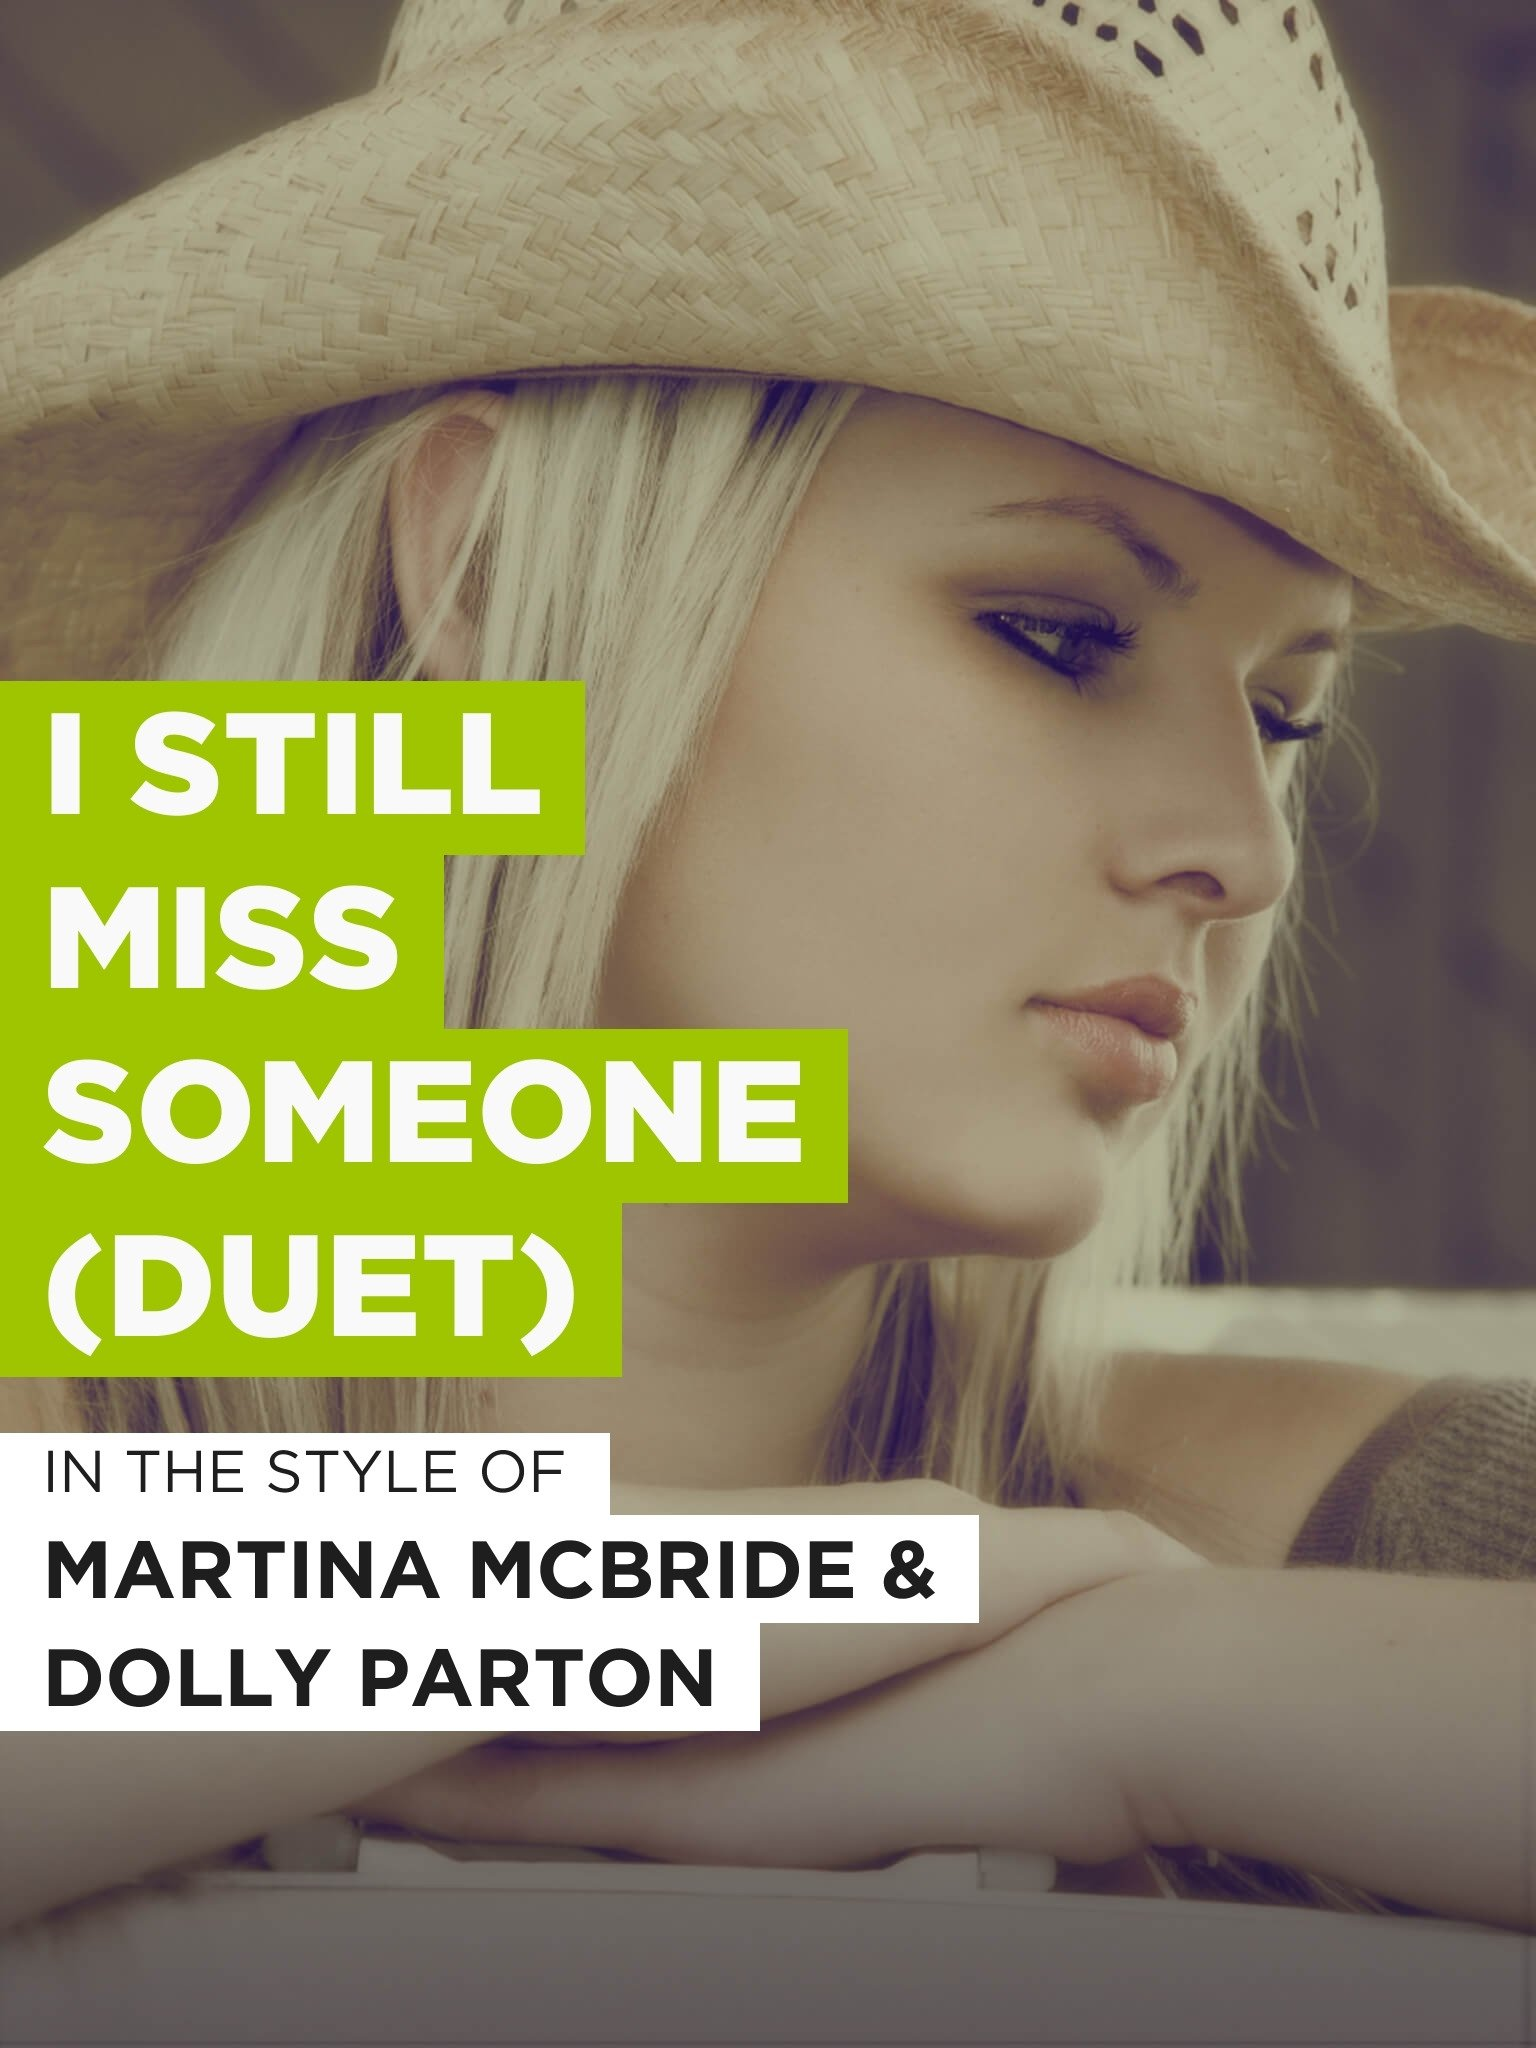 I still miss someone dolly parton